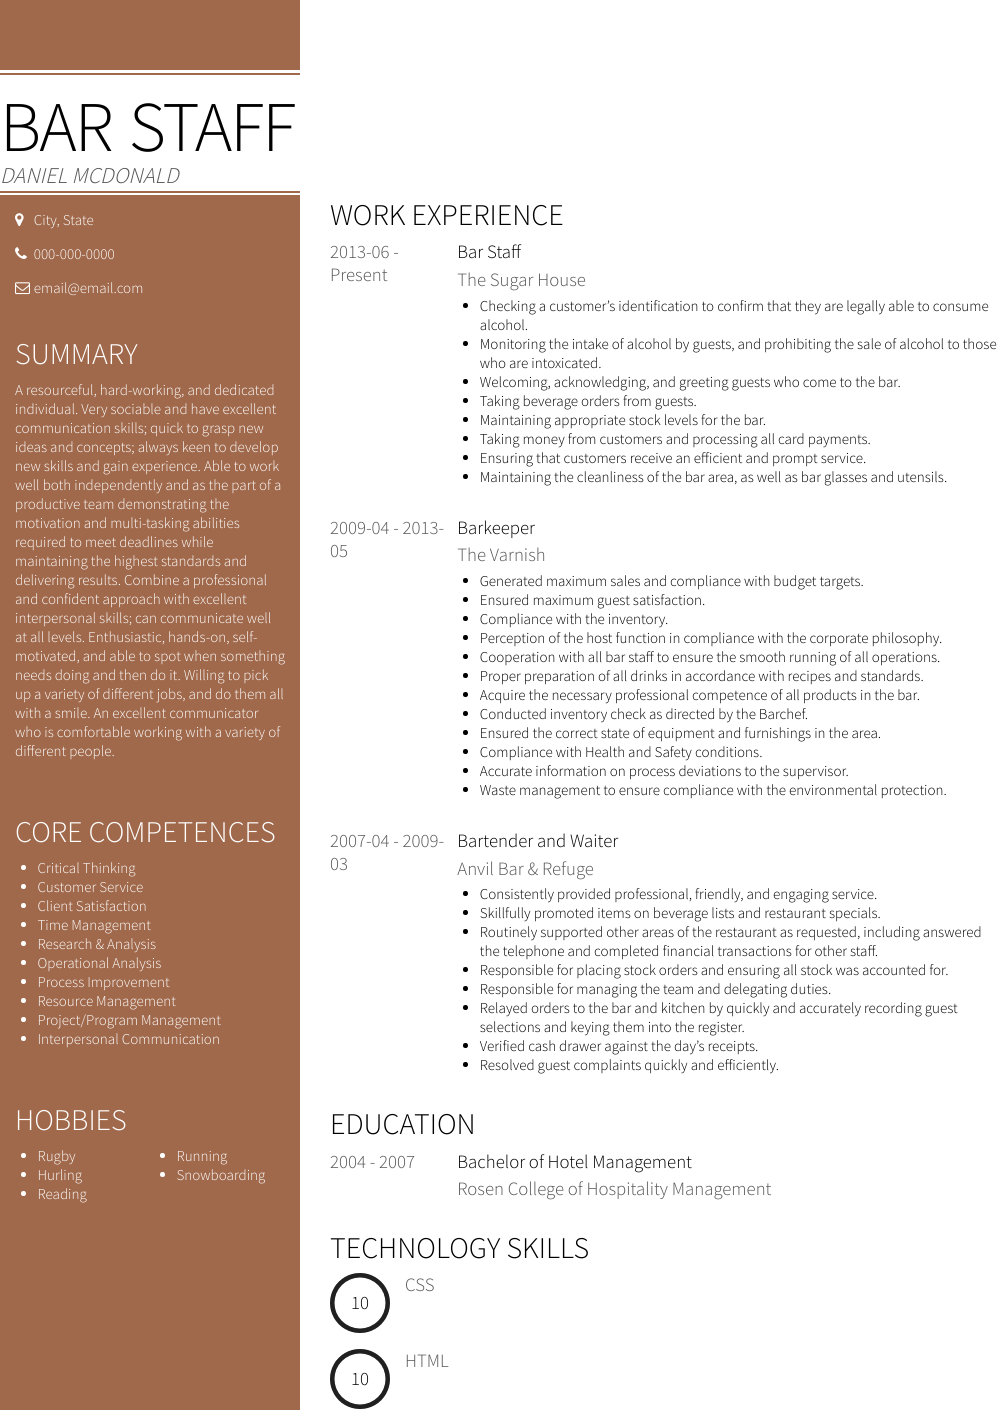 Bar Staff Resume Sample and Template